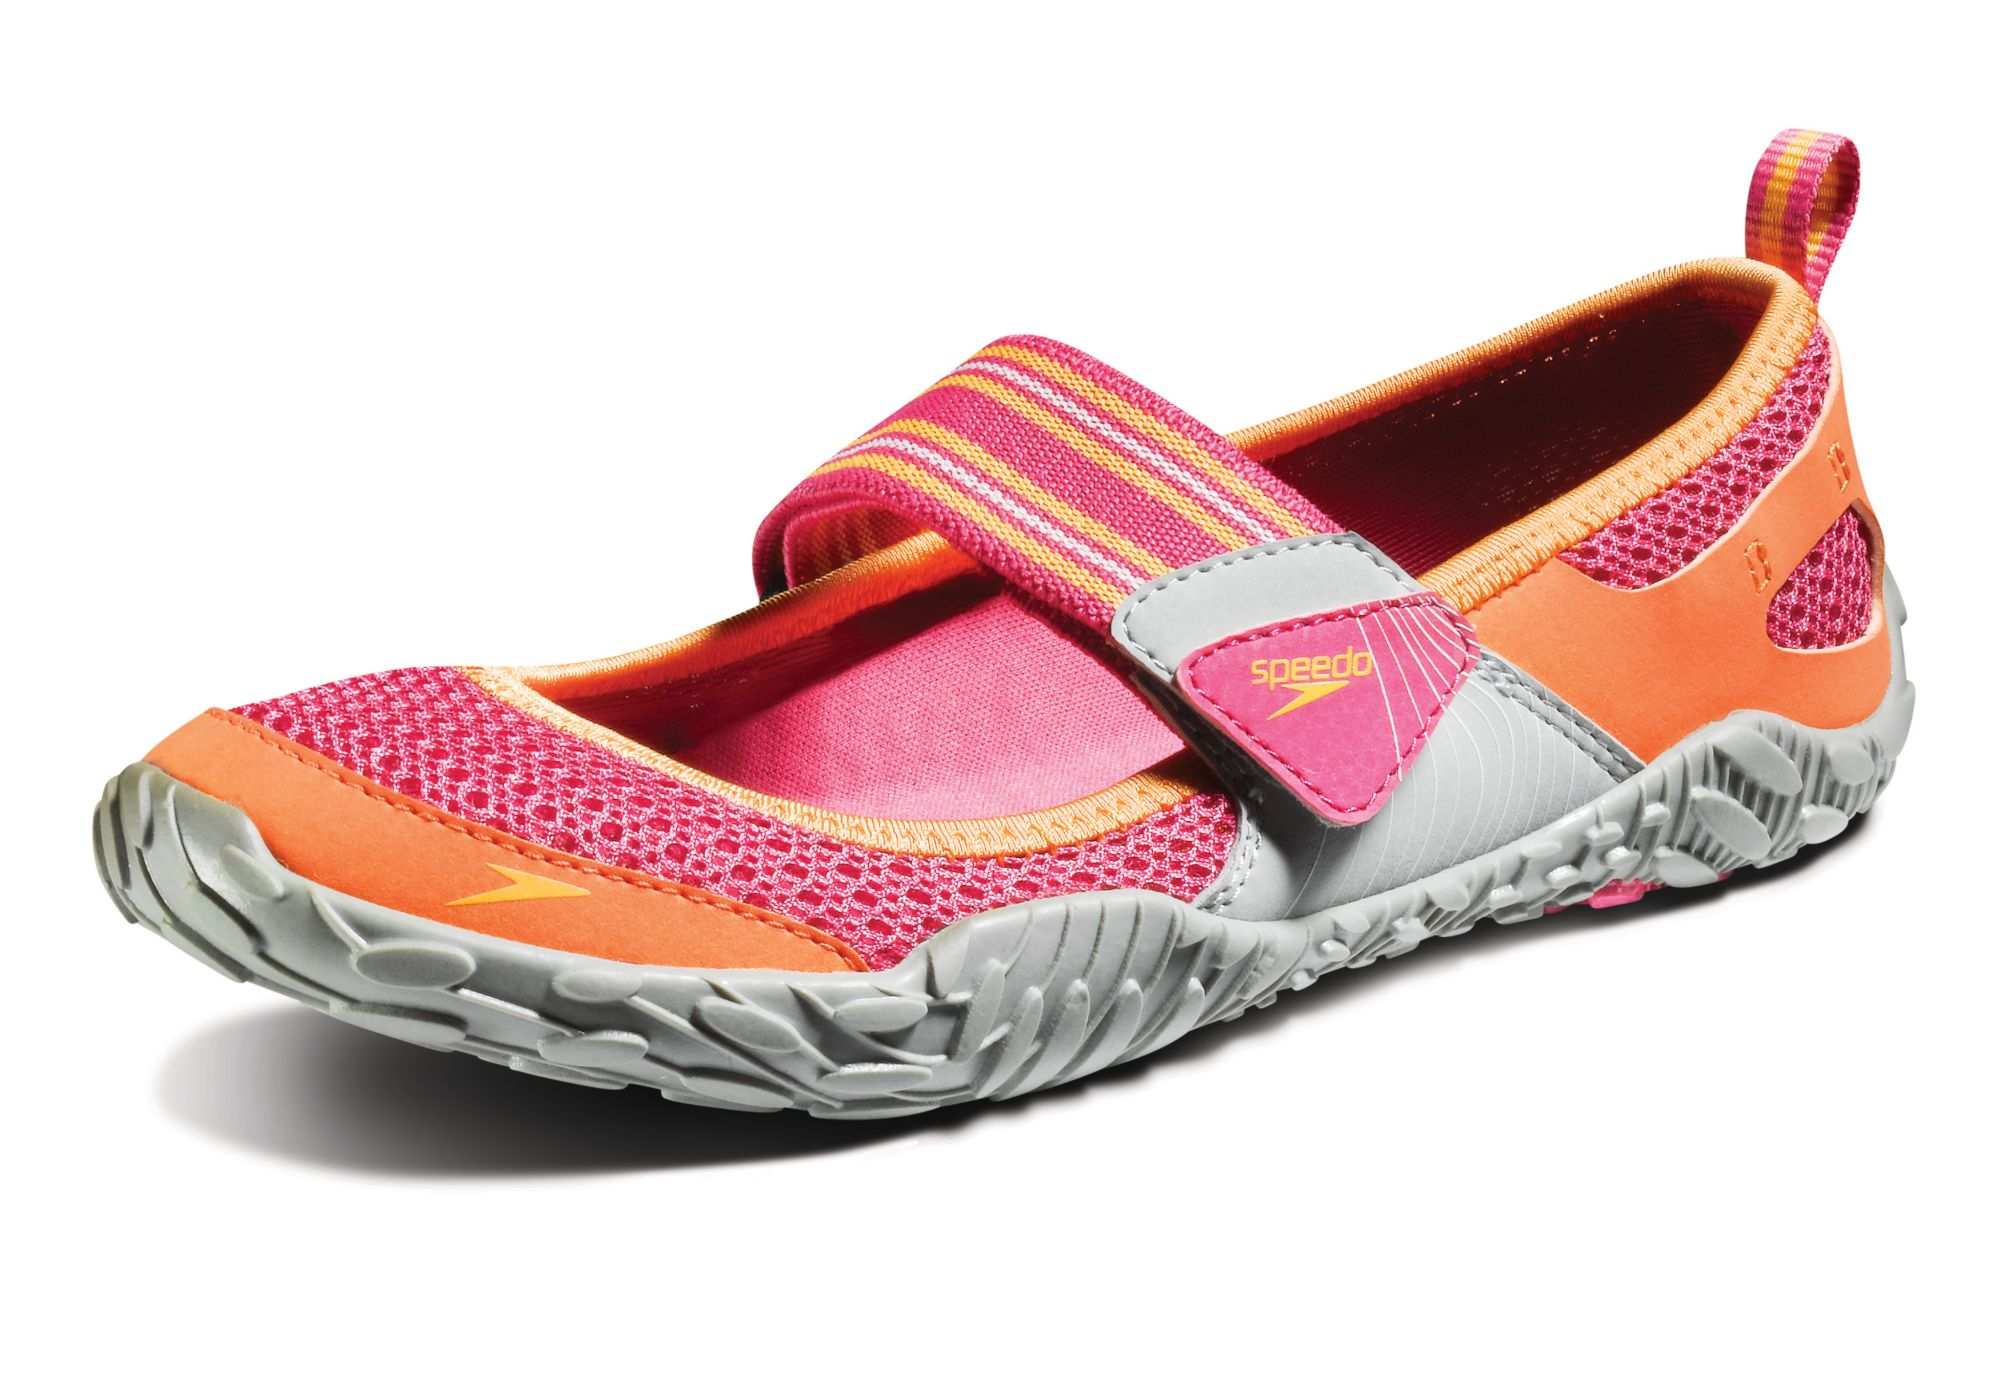 Shoes Women at 6pmcom